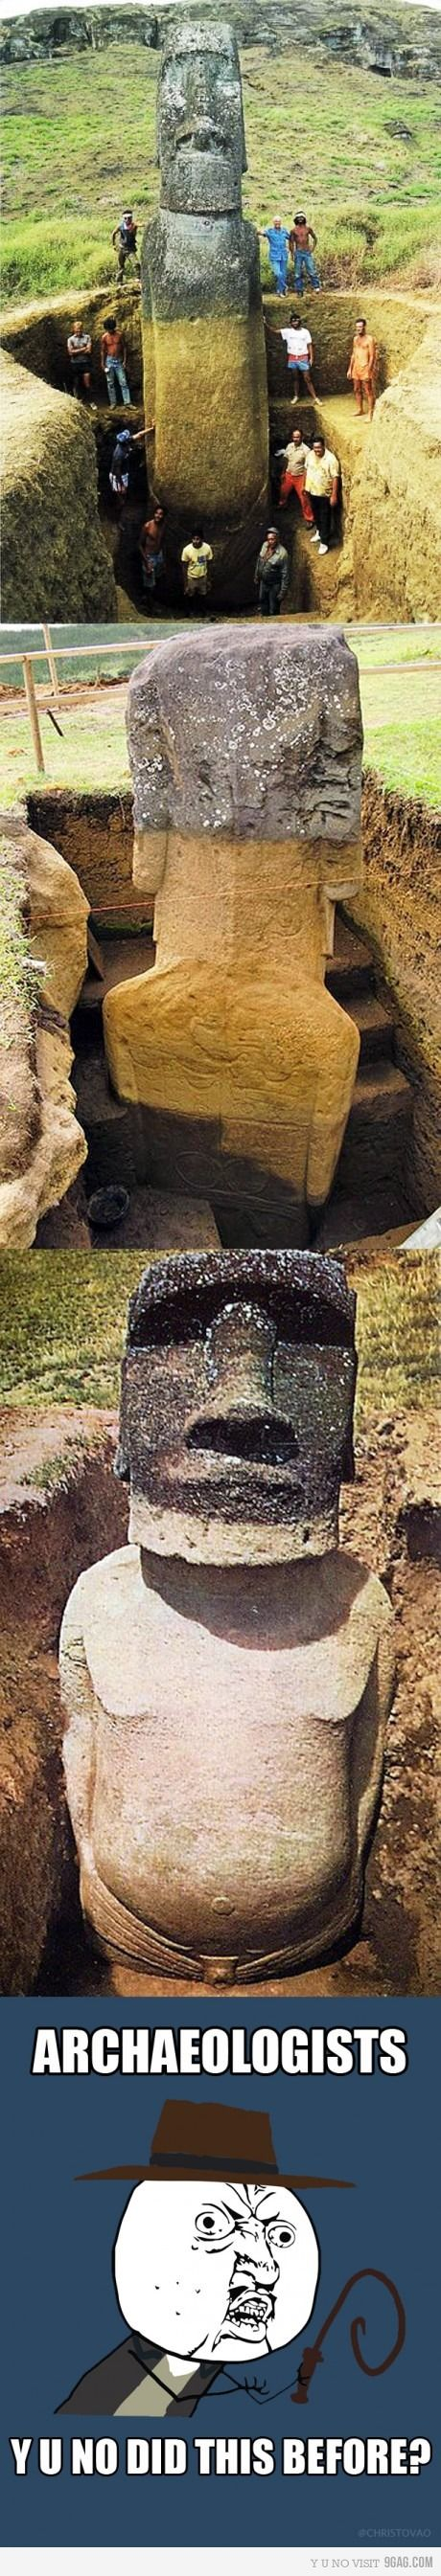 moai <3.   They discovered the Moai have bodies and their bodies also have writing carved into them!  What message do they bring to us??